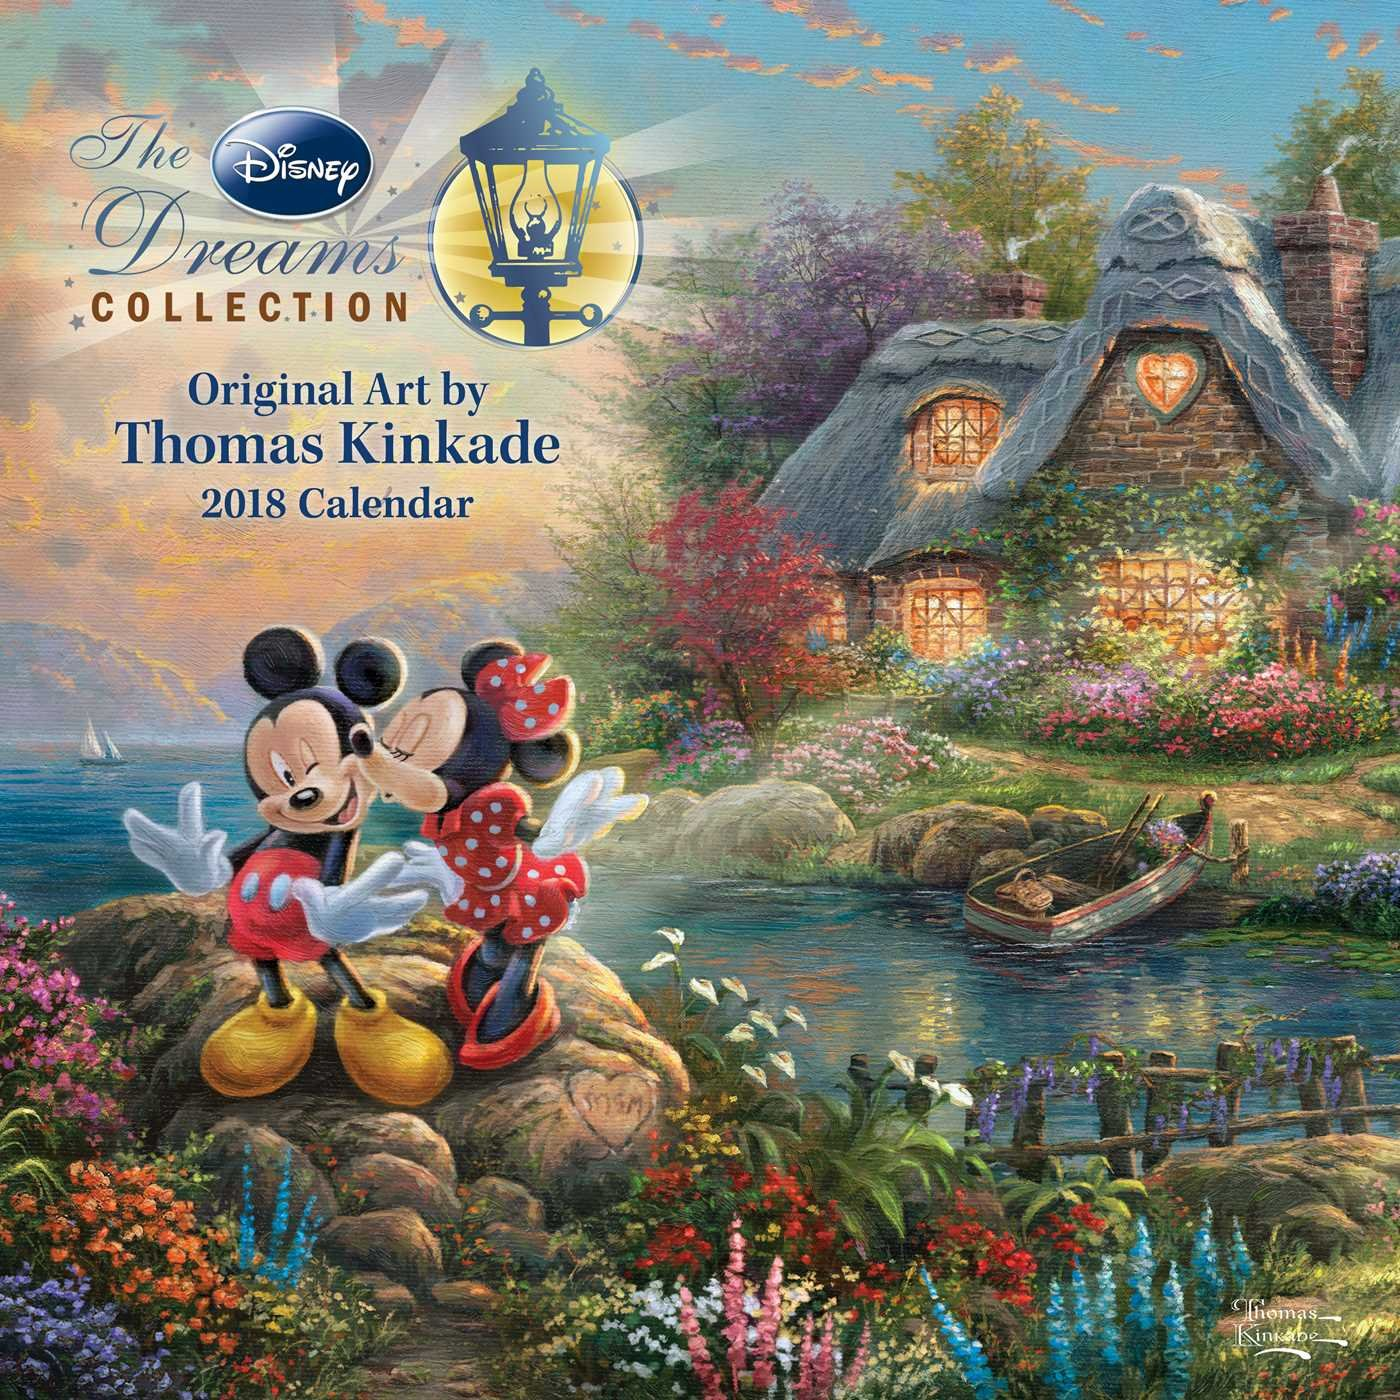 official thomas kinkade the disney dreams collection 2018 wall calendar amazoncouk thomas kinkade 0762042136917 books